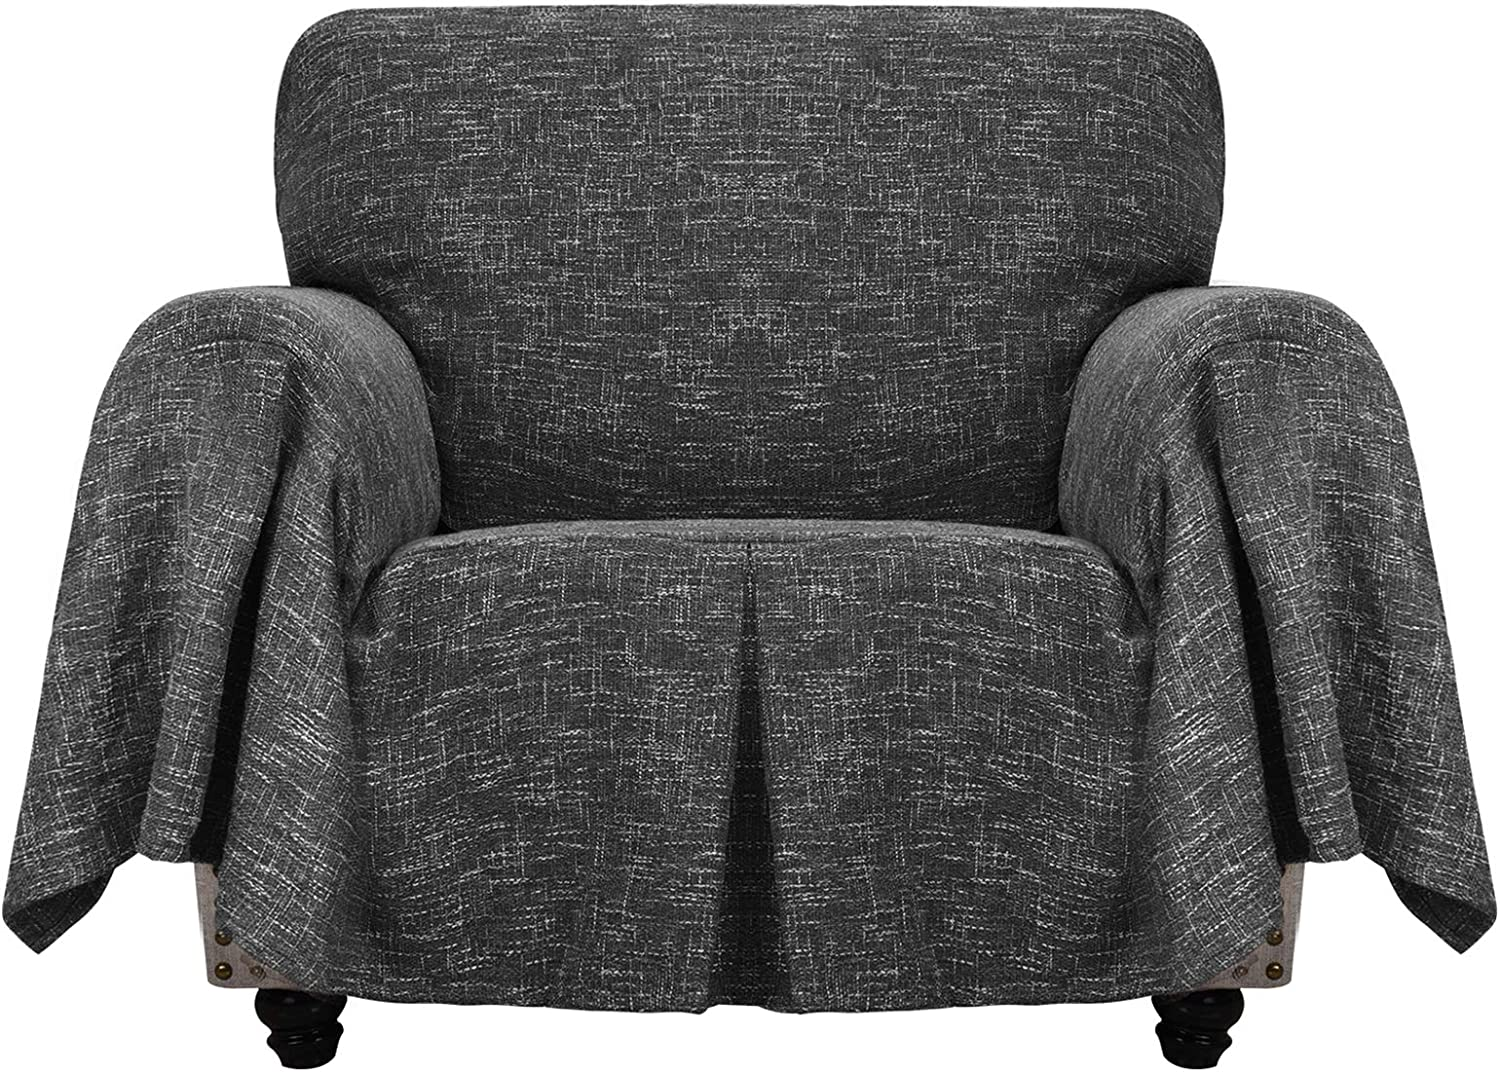 YEMYHOM Linen Chair Covers for Living Room Universal Chair Slipcovers with Arms Premium Pet Dog Armchair Slipcover Furniture Protector Magic Slip Cover with Ruffles (Chair, Charcoal Gray)